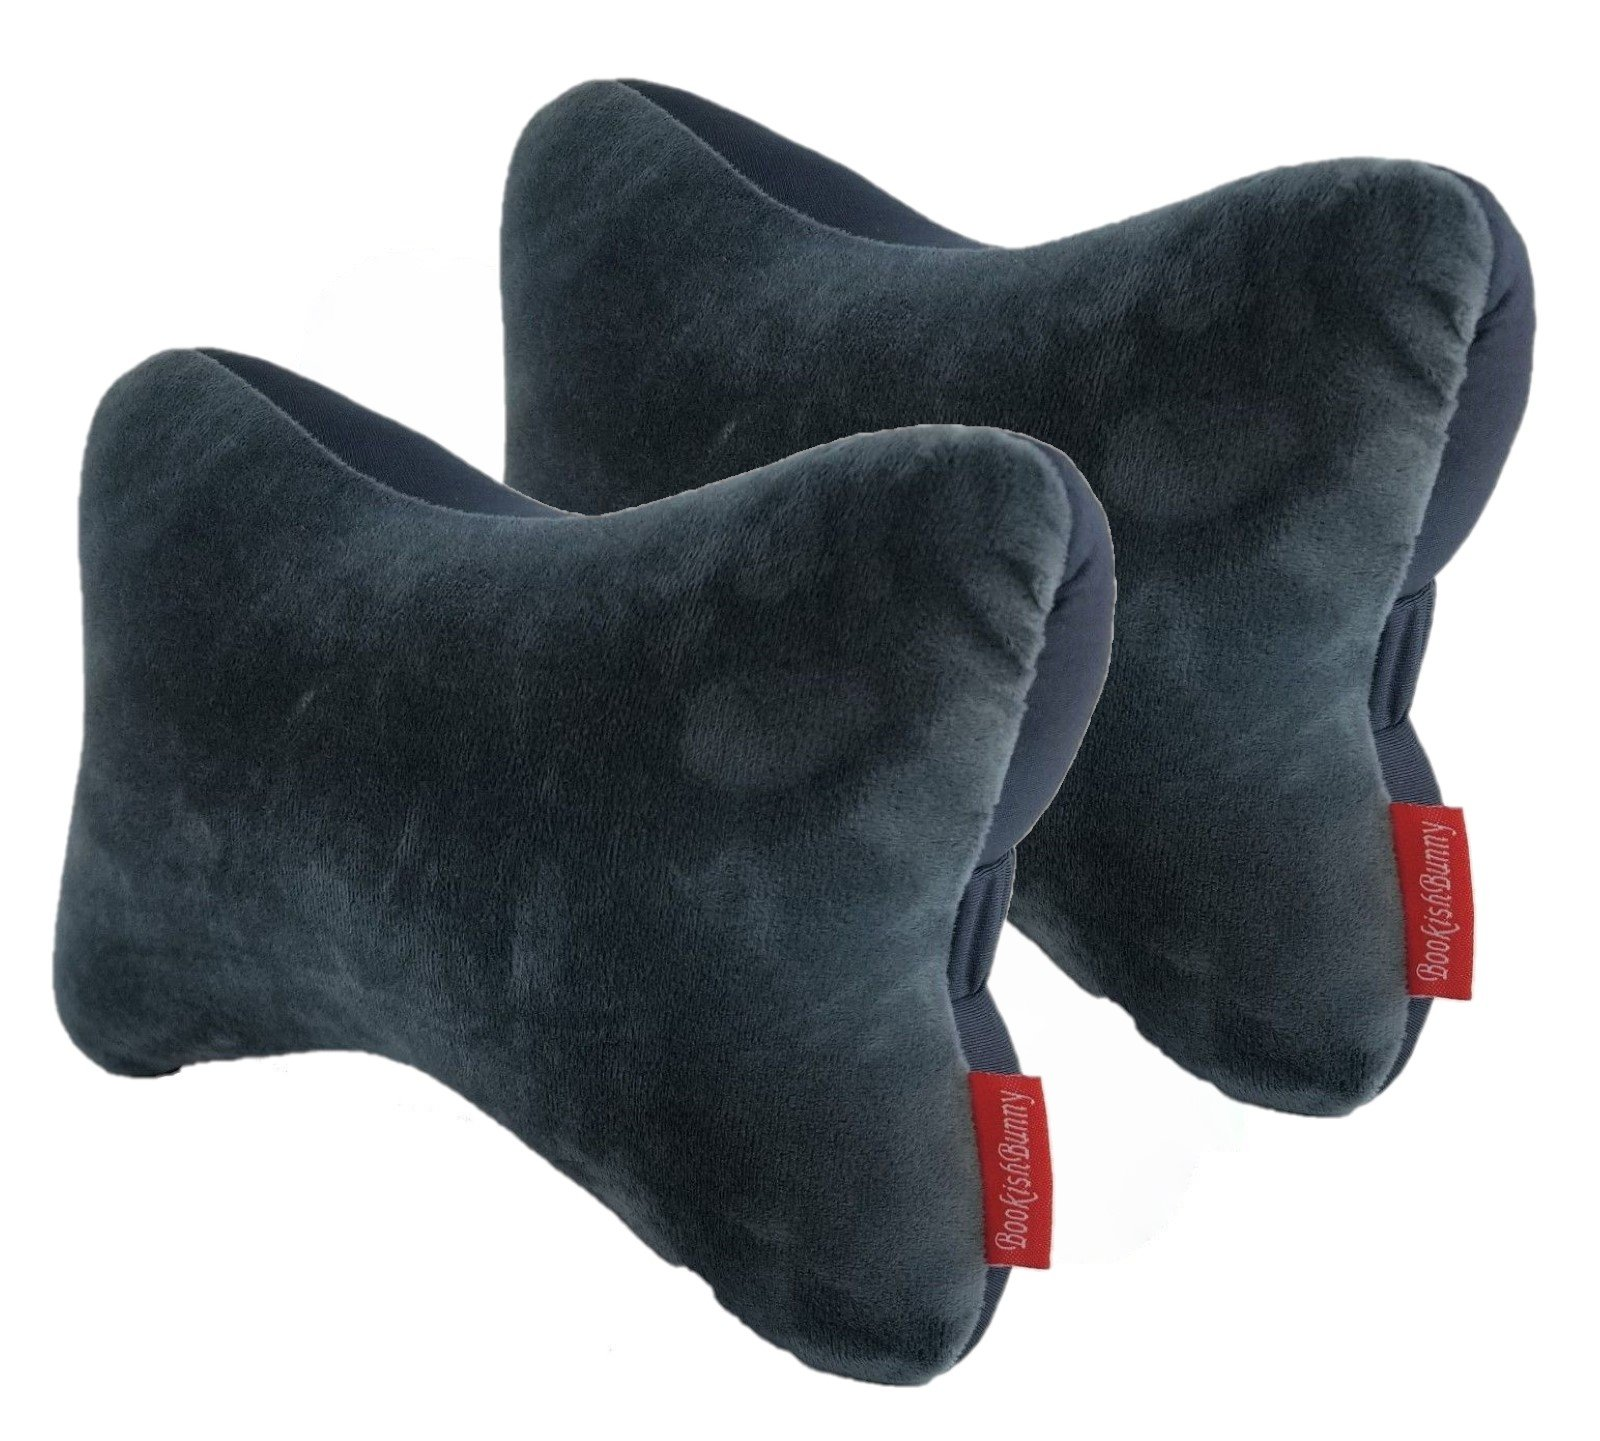 Bookishbunny 2pk Dog Bone Shaped Travel Neck Pillows Micro-Bead Car Bus Truck Driving Comfort Head Rest Support (Gray)